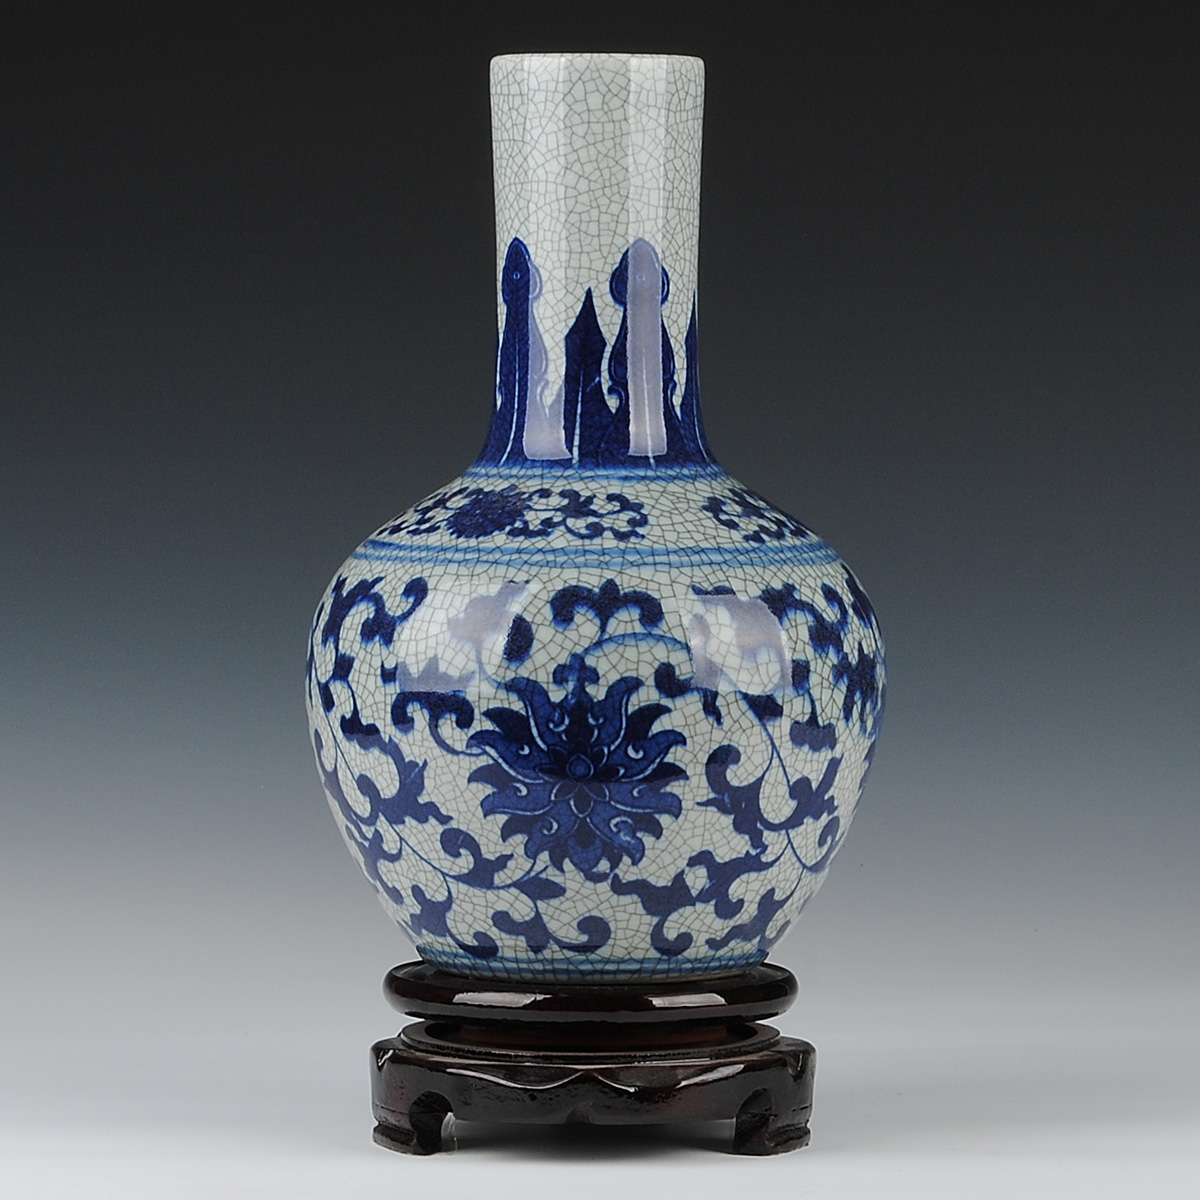 Ceramics blue and white porcelain antique guanyao crack glaze vase vintage home decoration crafts